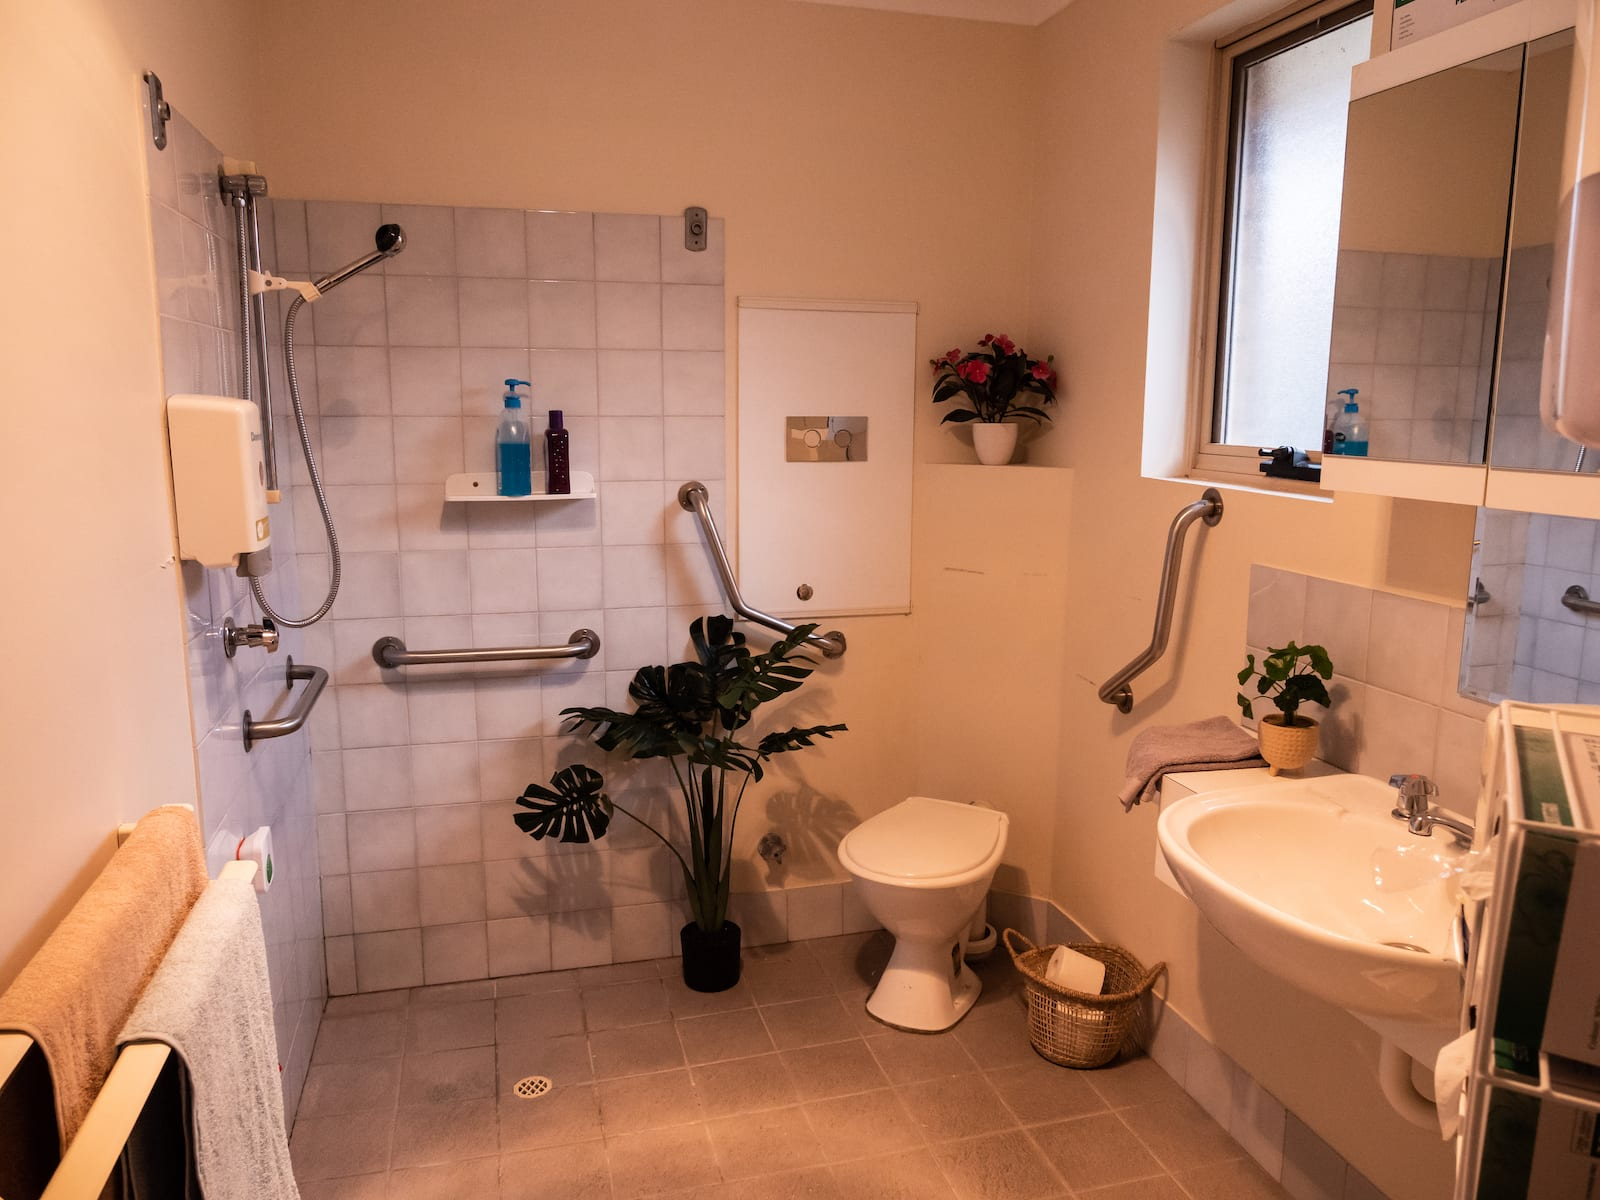 west park residential care home ensuite